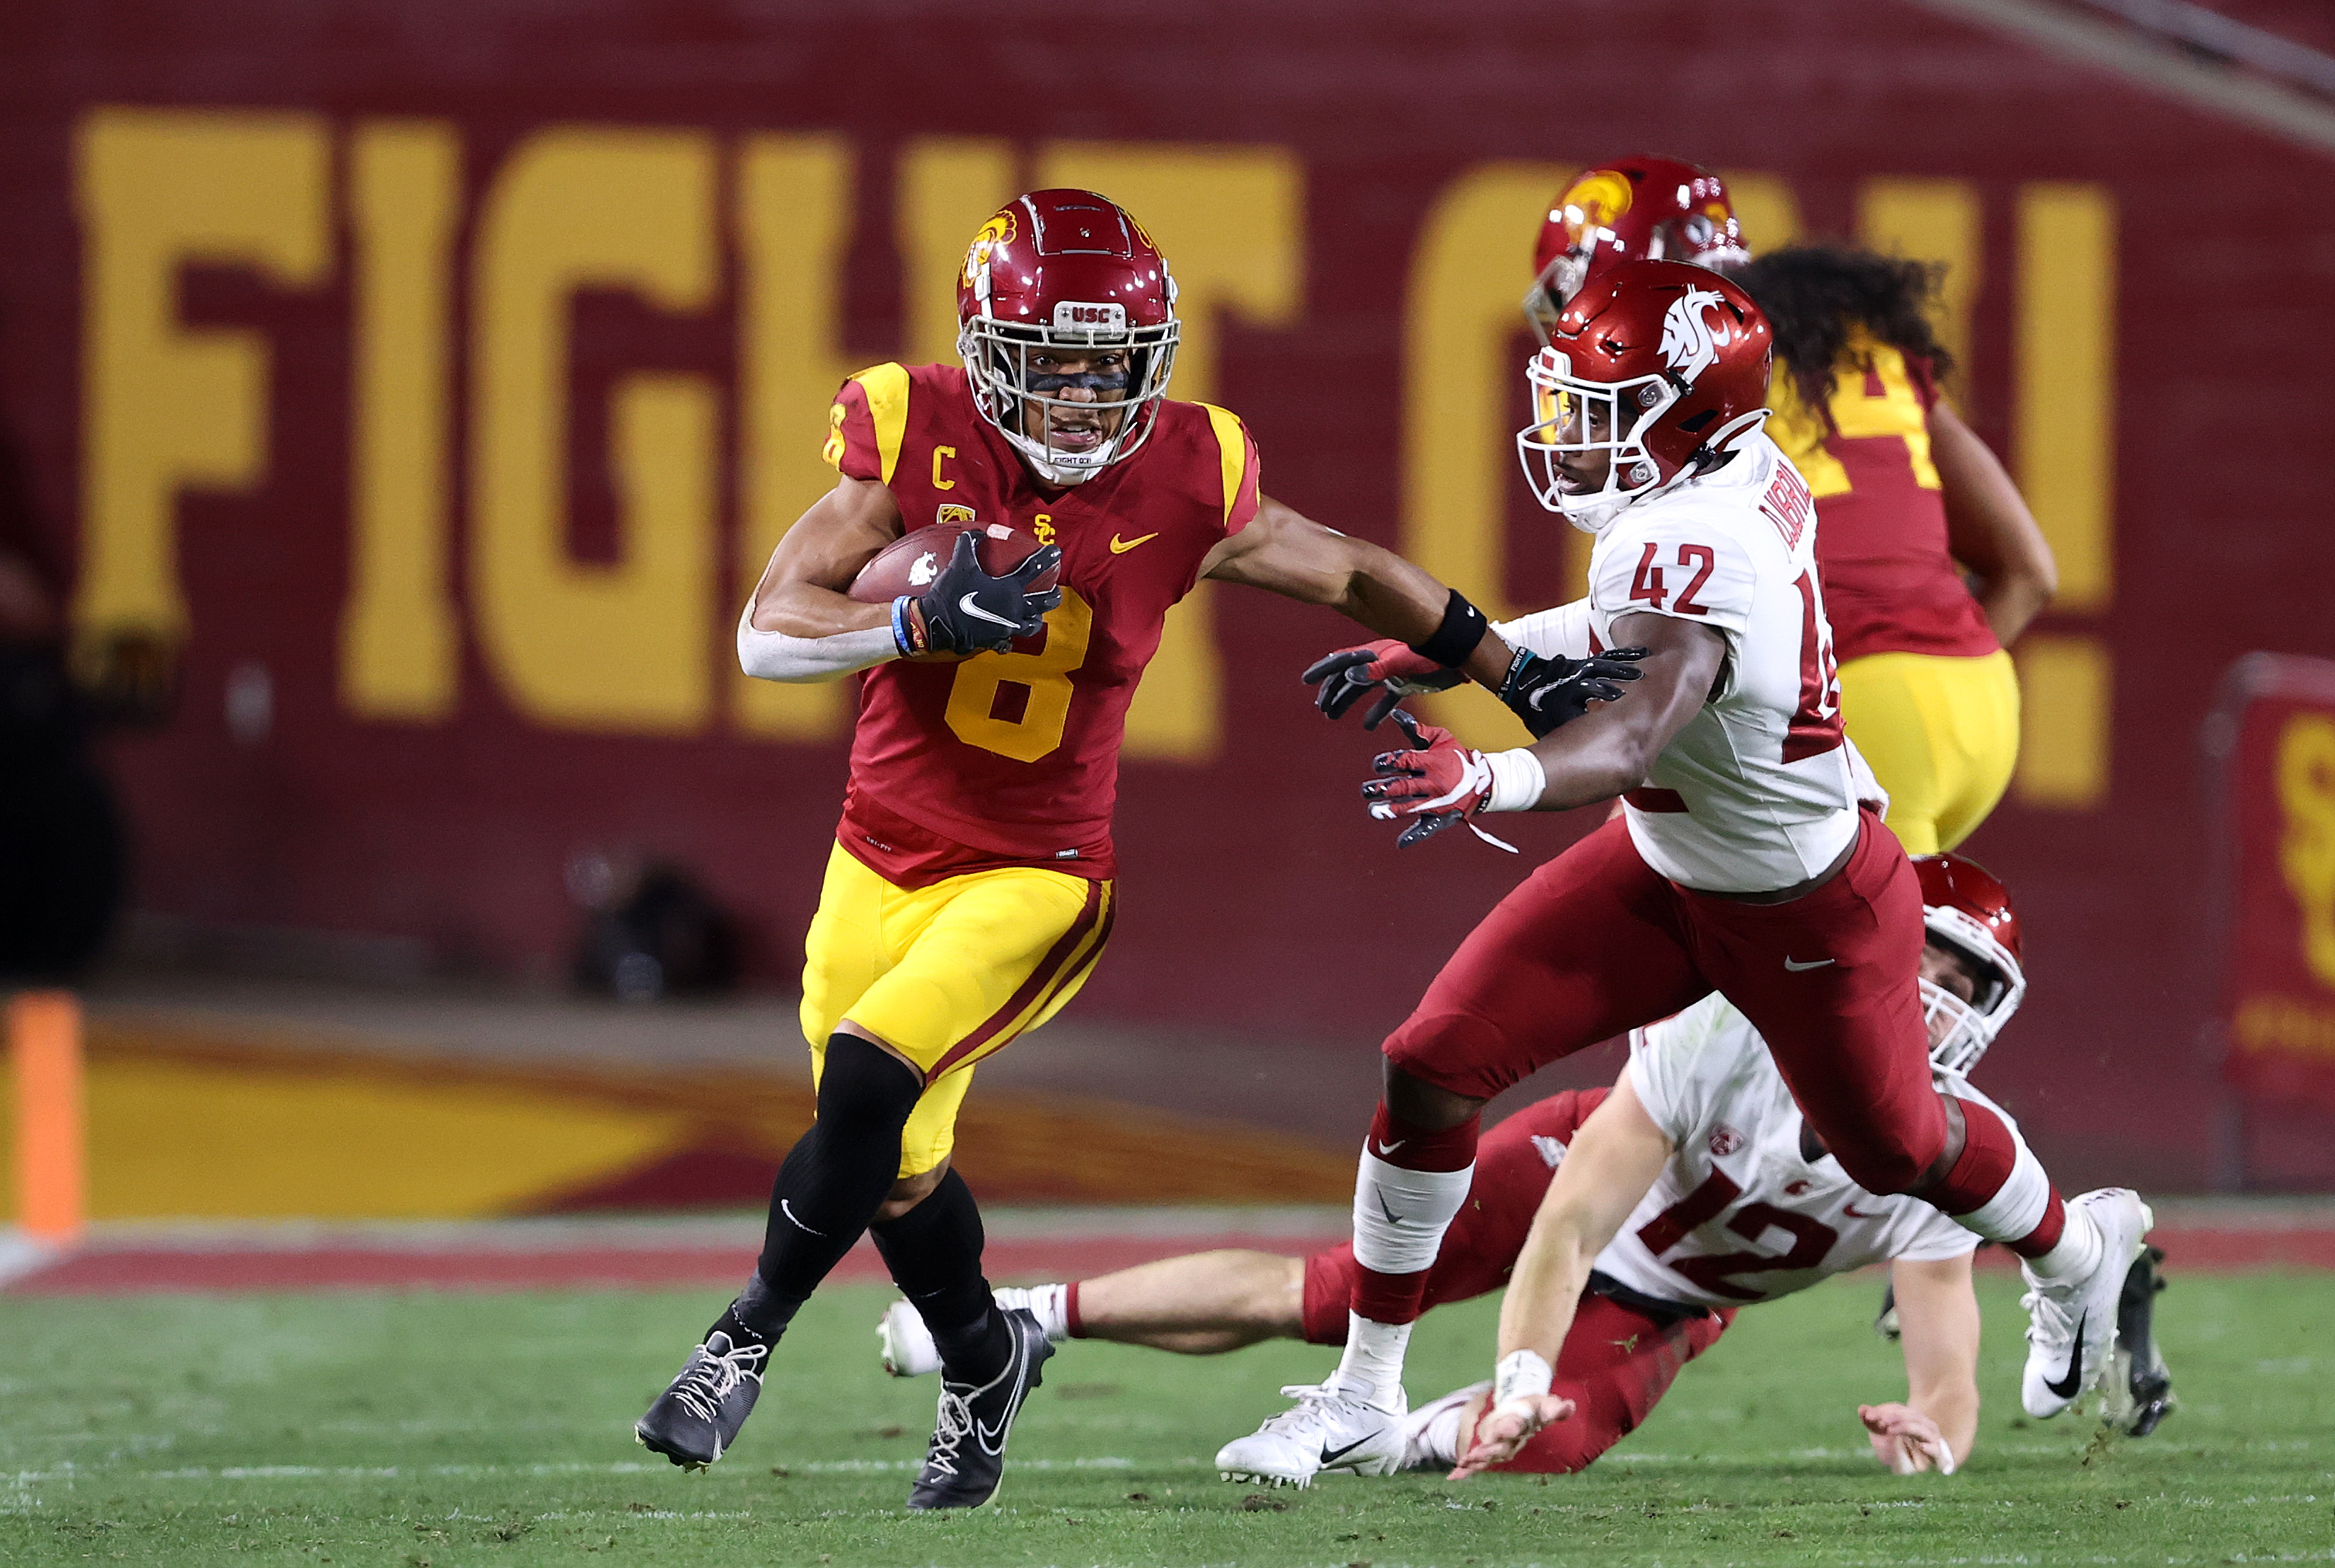 Amon-Ra St. Brown #8 of the USC Trojans eludes the tackle of Halid Djibril #42 of the Washington State Cougars on a punt return during the first half of a game at Los Angeles Coliseum on December 06, 2020 in Los Angeles, California.